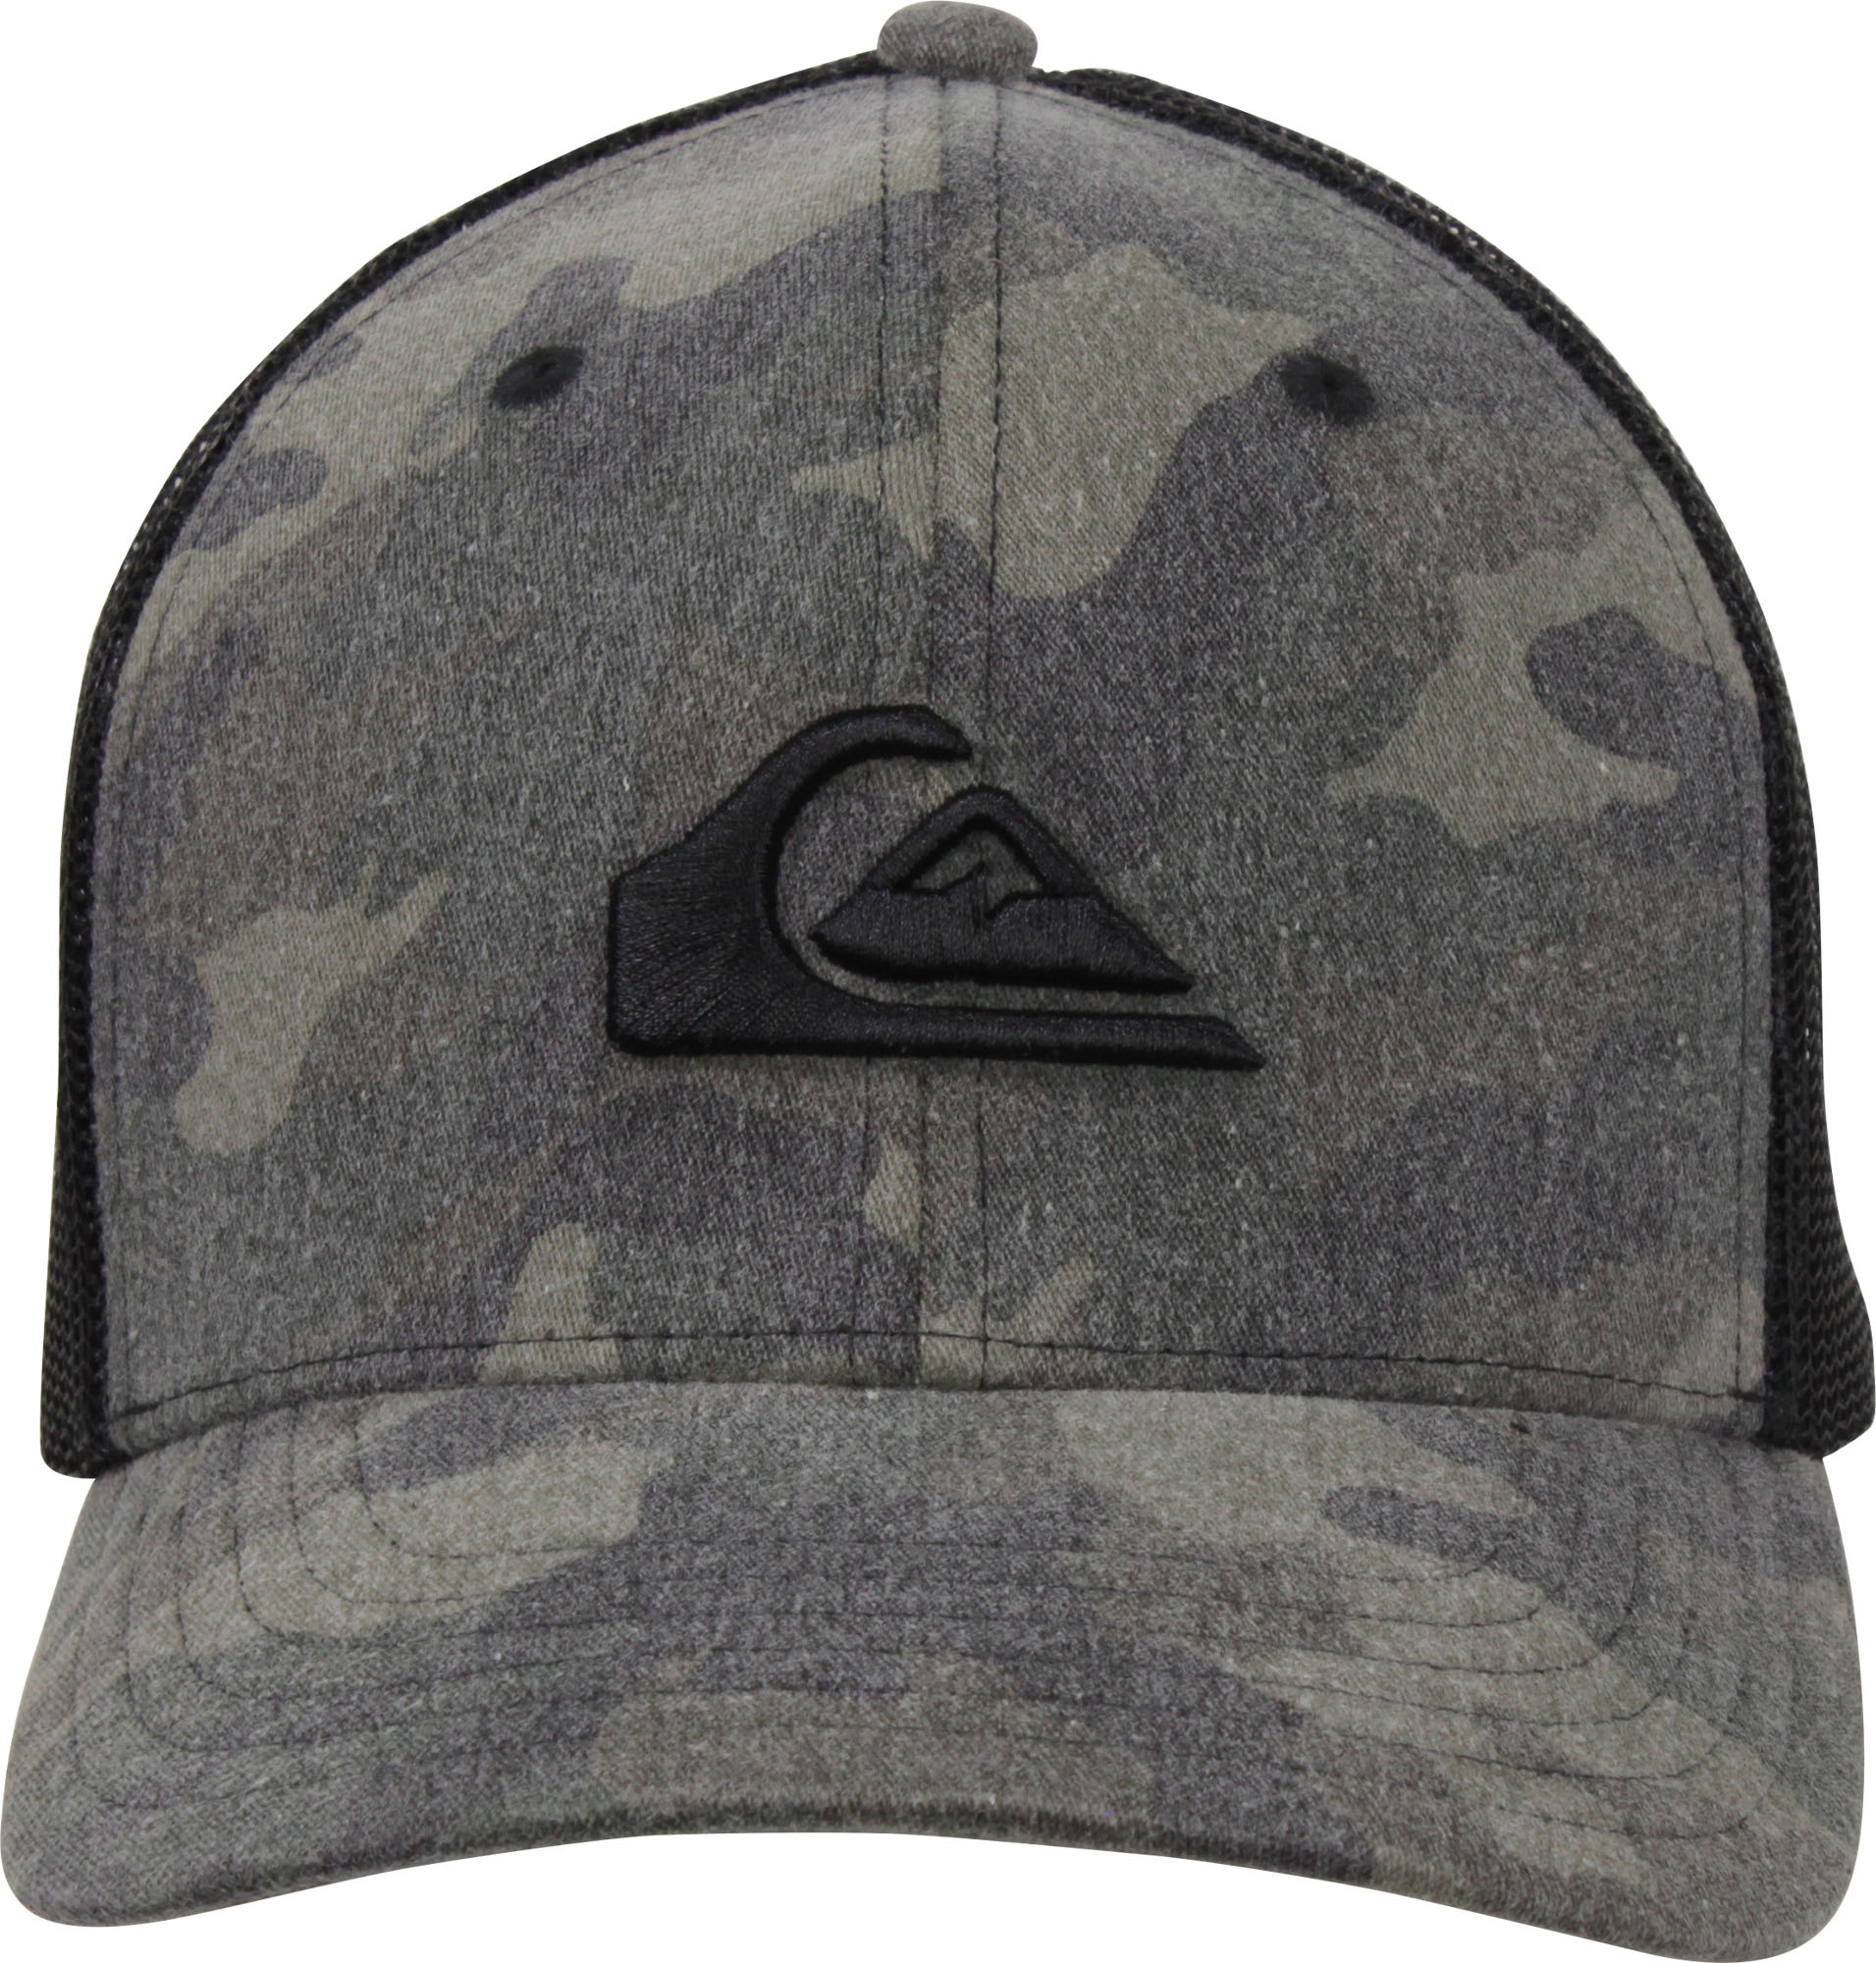 73155a2cd29eb Quiksilver-Mens-Grounder-Snapback-Trucker-Hat-Camo-Black thumbnail